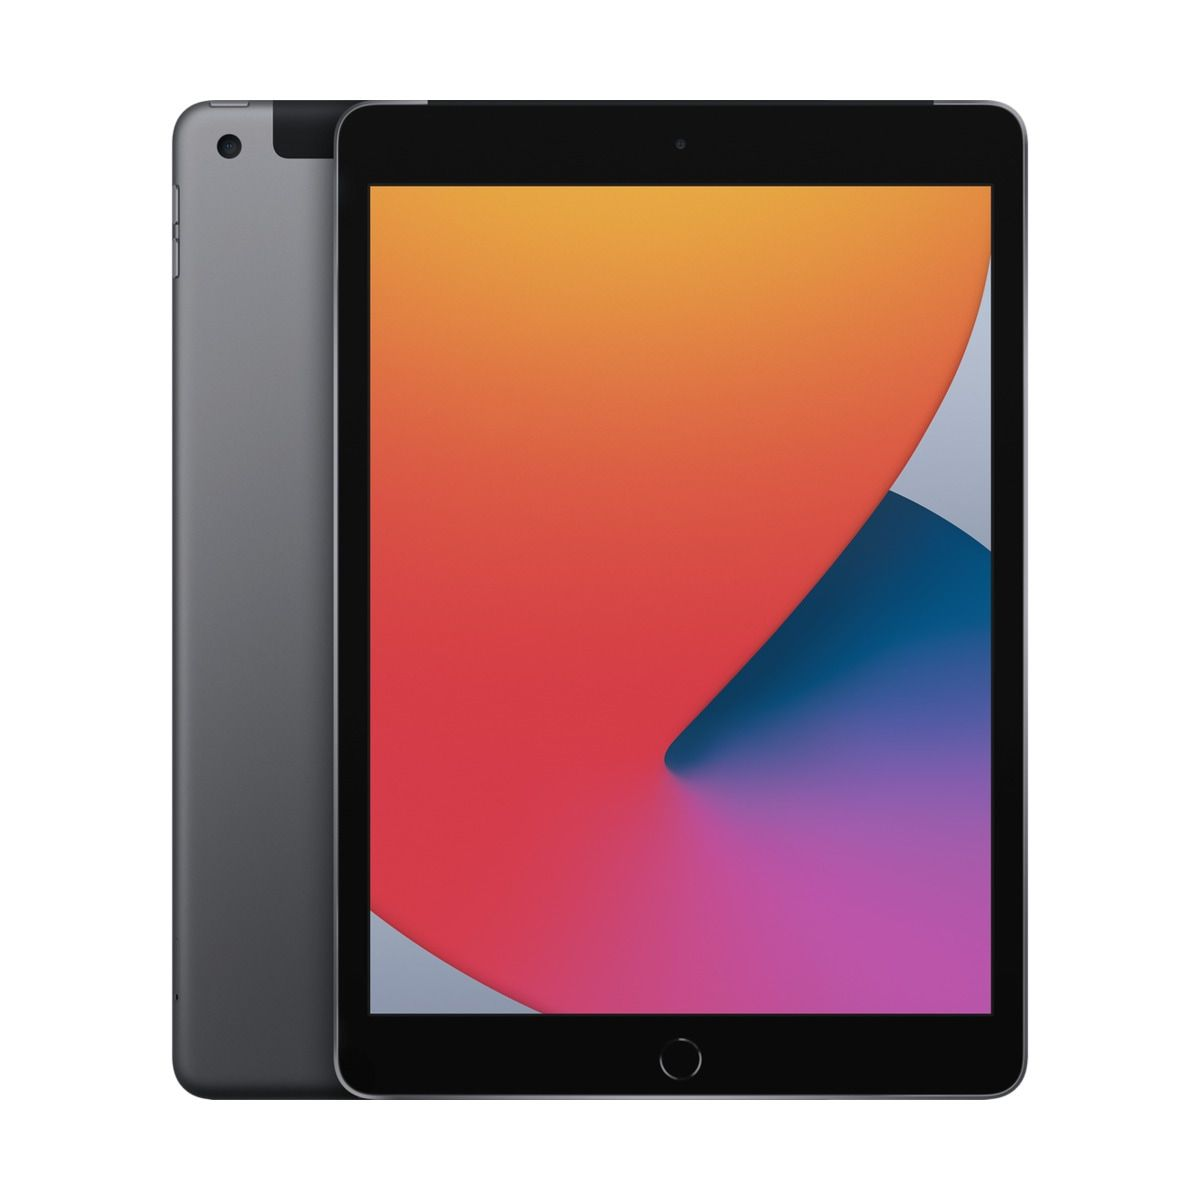 iPad Wi-Fi + Cell 32GB - Space Grey / SK